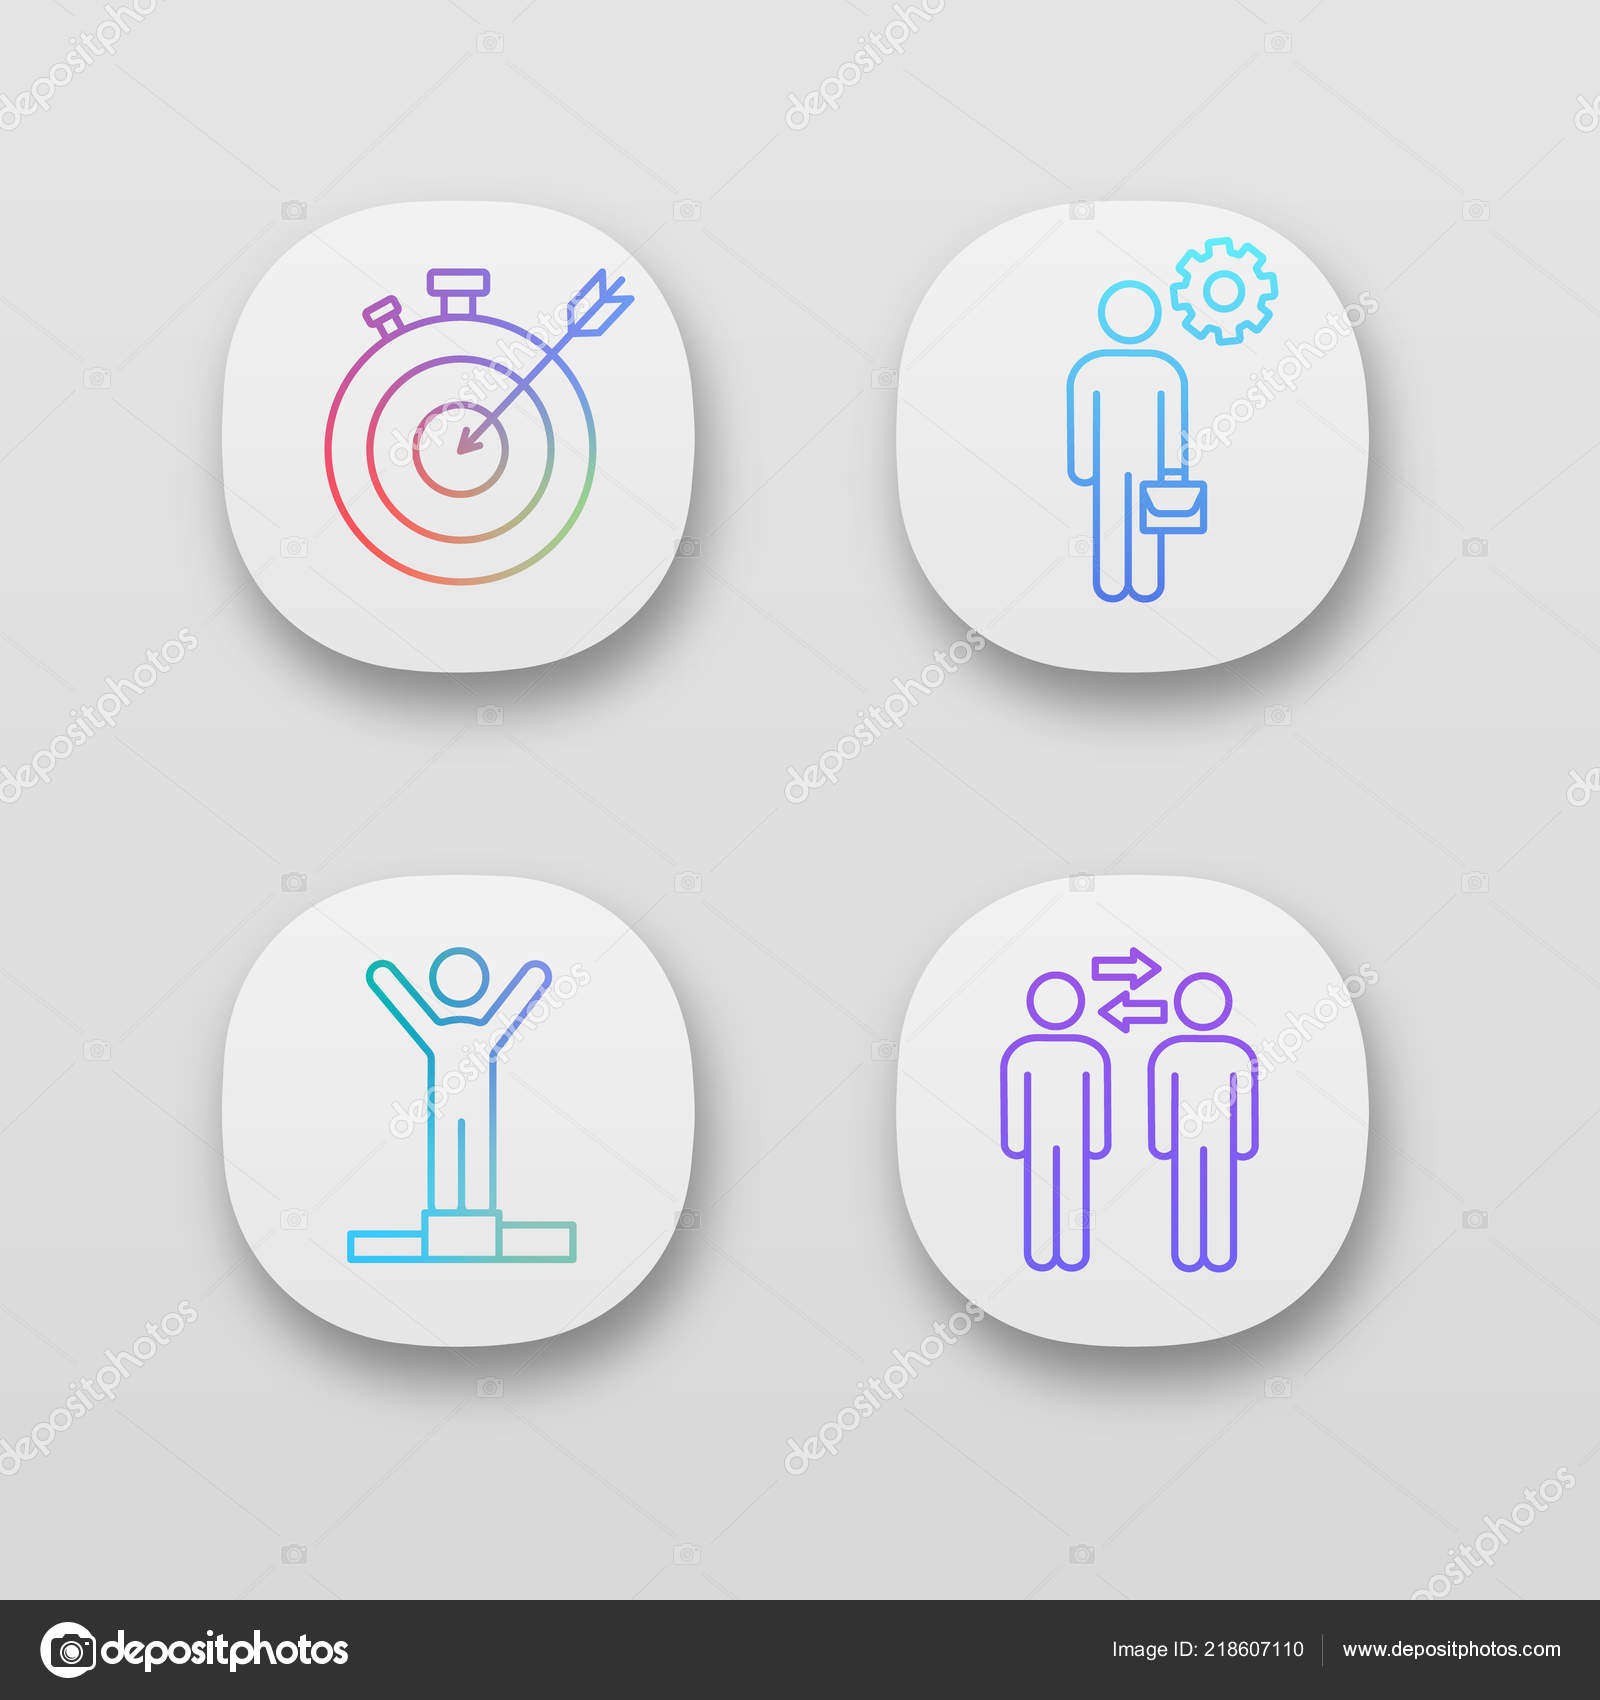 Business Management App Icons Set User Interface Smart Goal